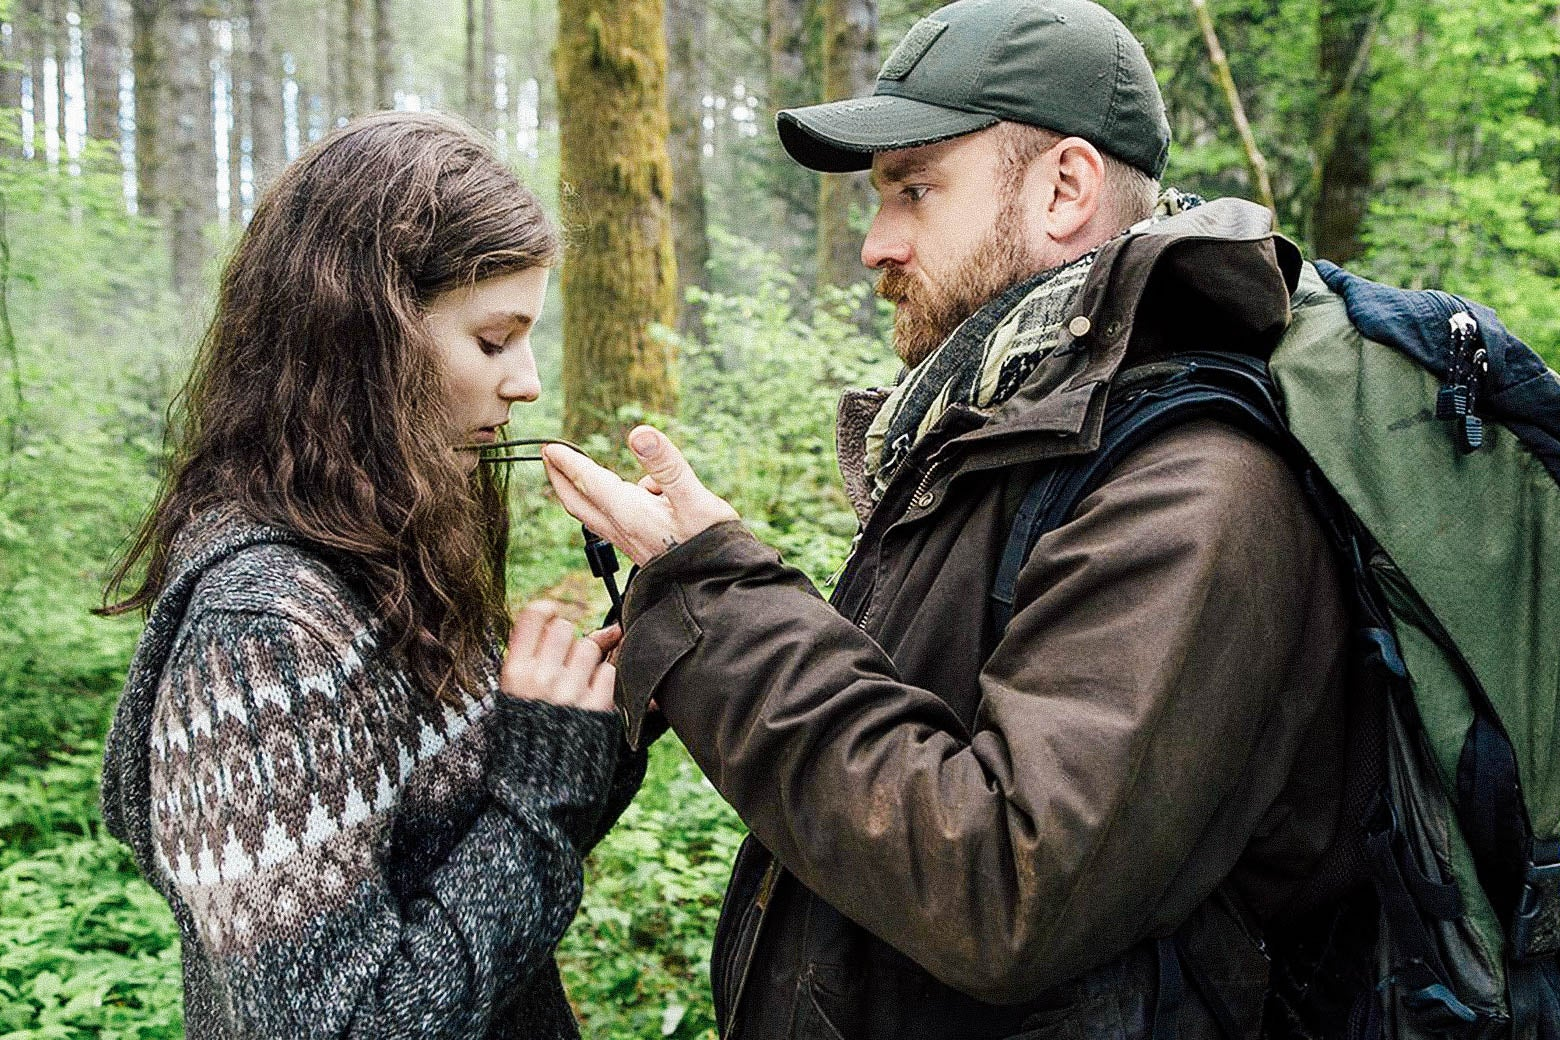 Movie still: Thomasin McKenzie stands while Ben Foster tugs at an object around her neck.